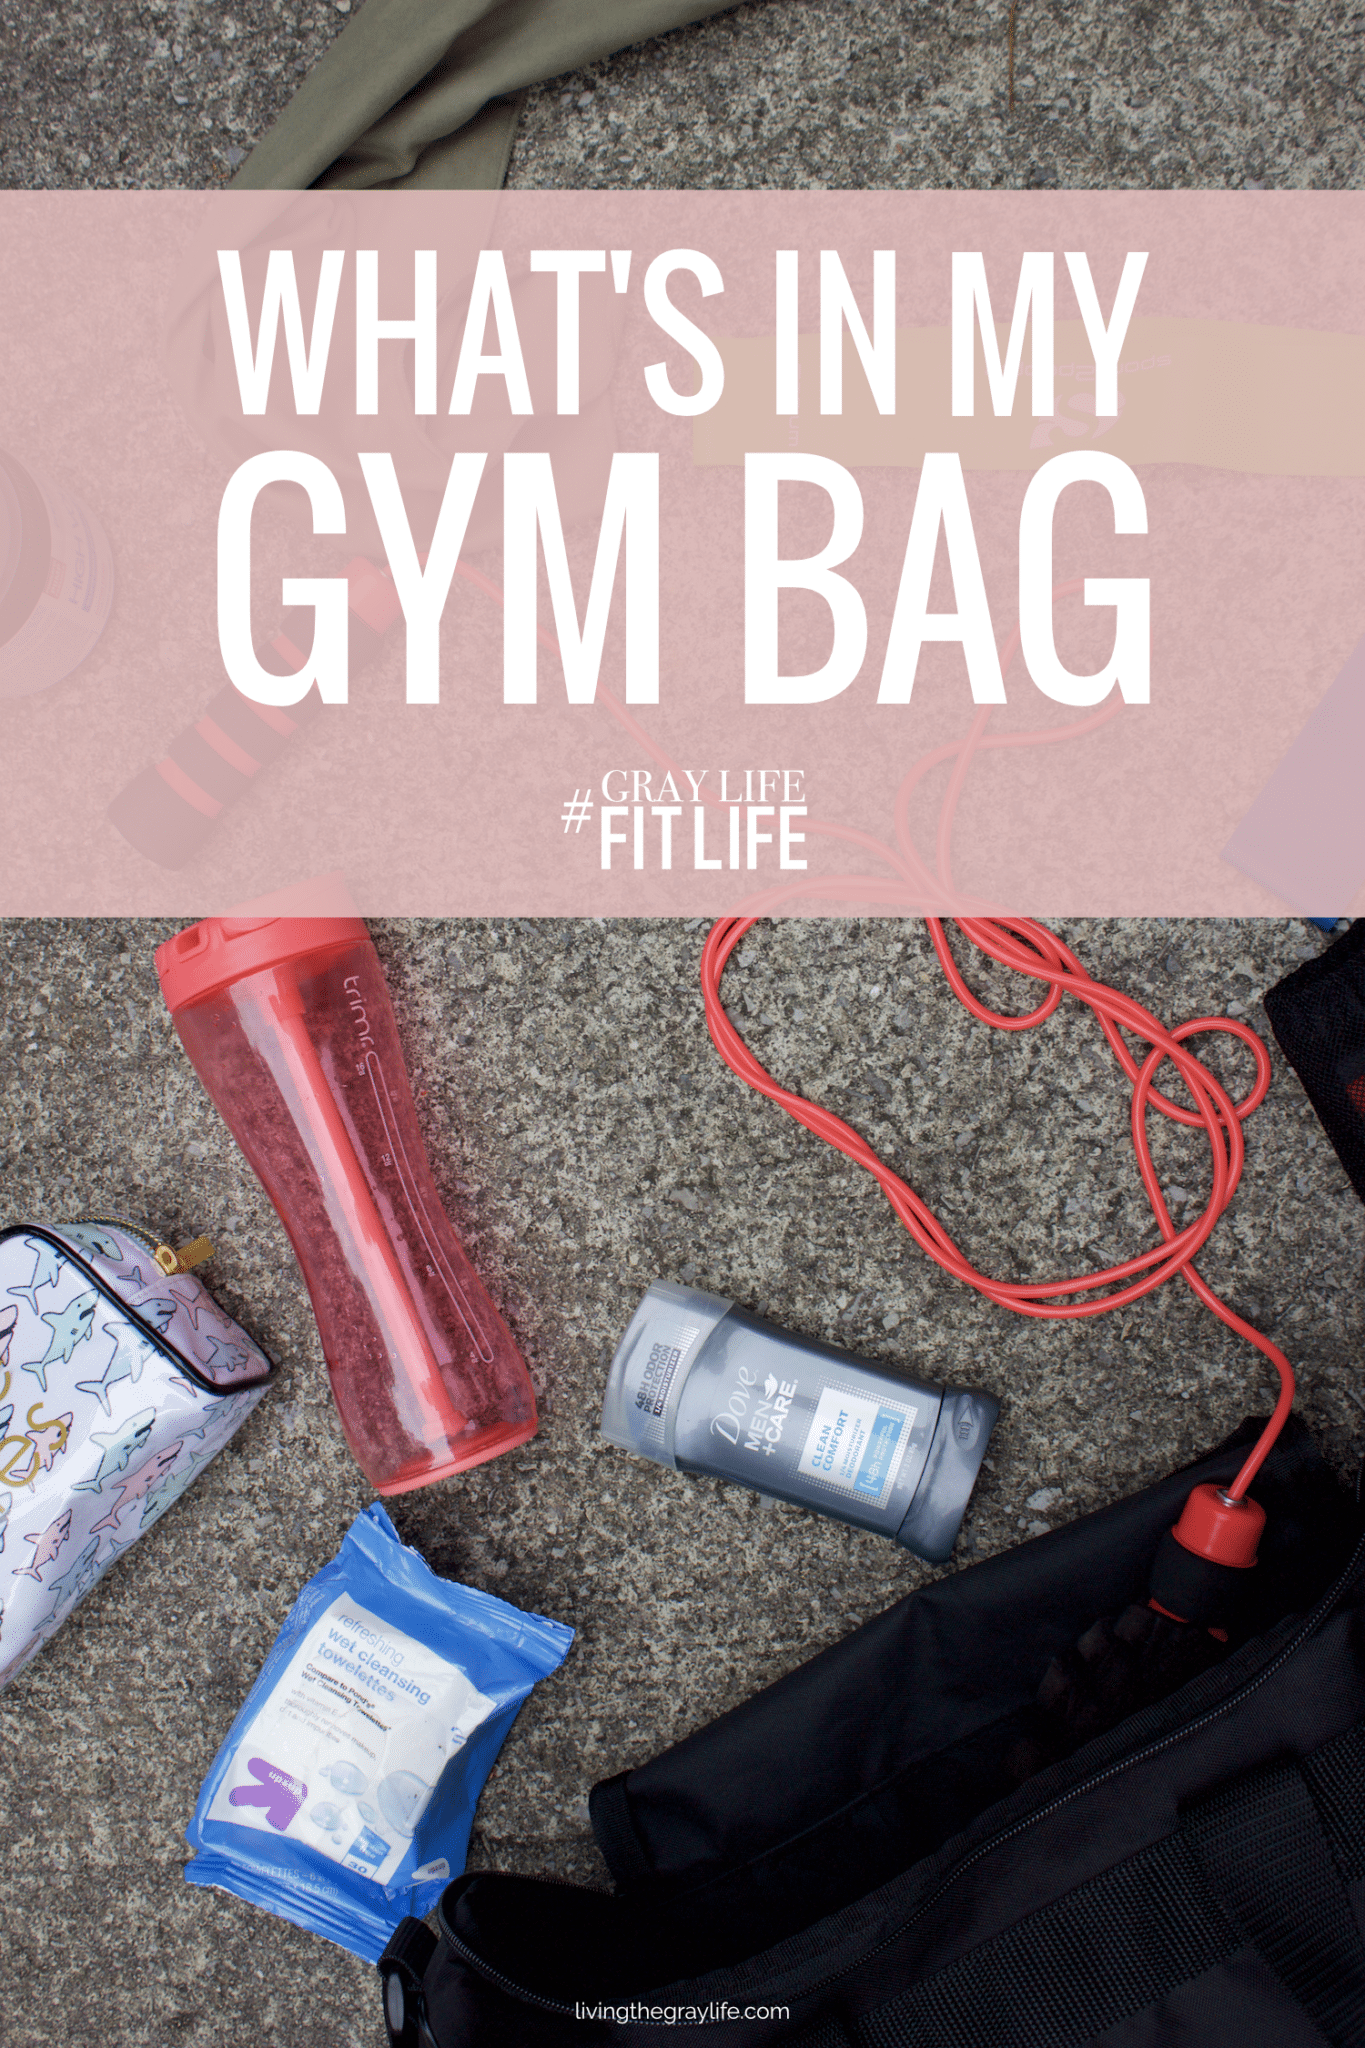 Gym Bag Essentials | Get the most out of your workout by having everything you need in your gym bag. Here's what I keep in my gym bag to have the best workouts!